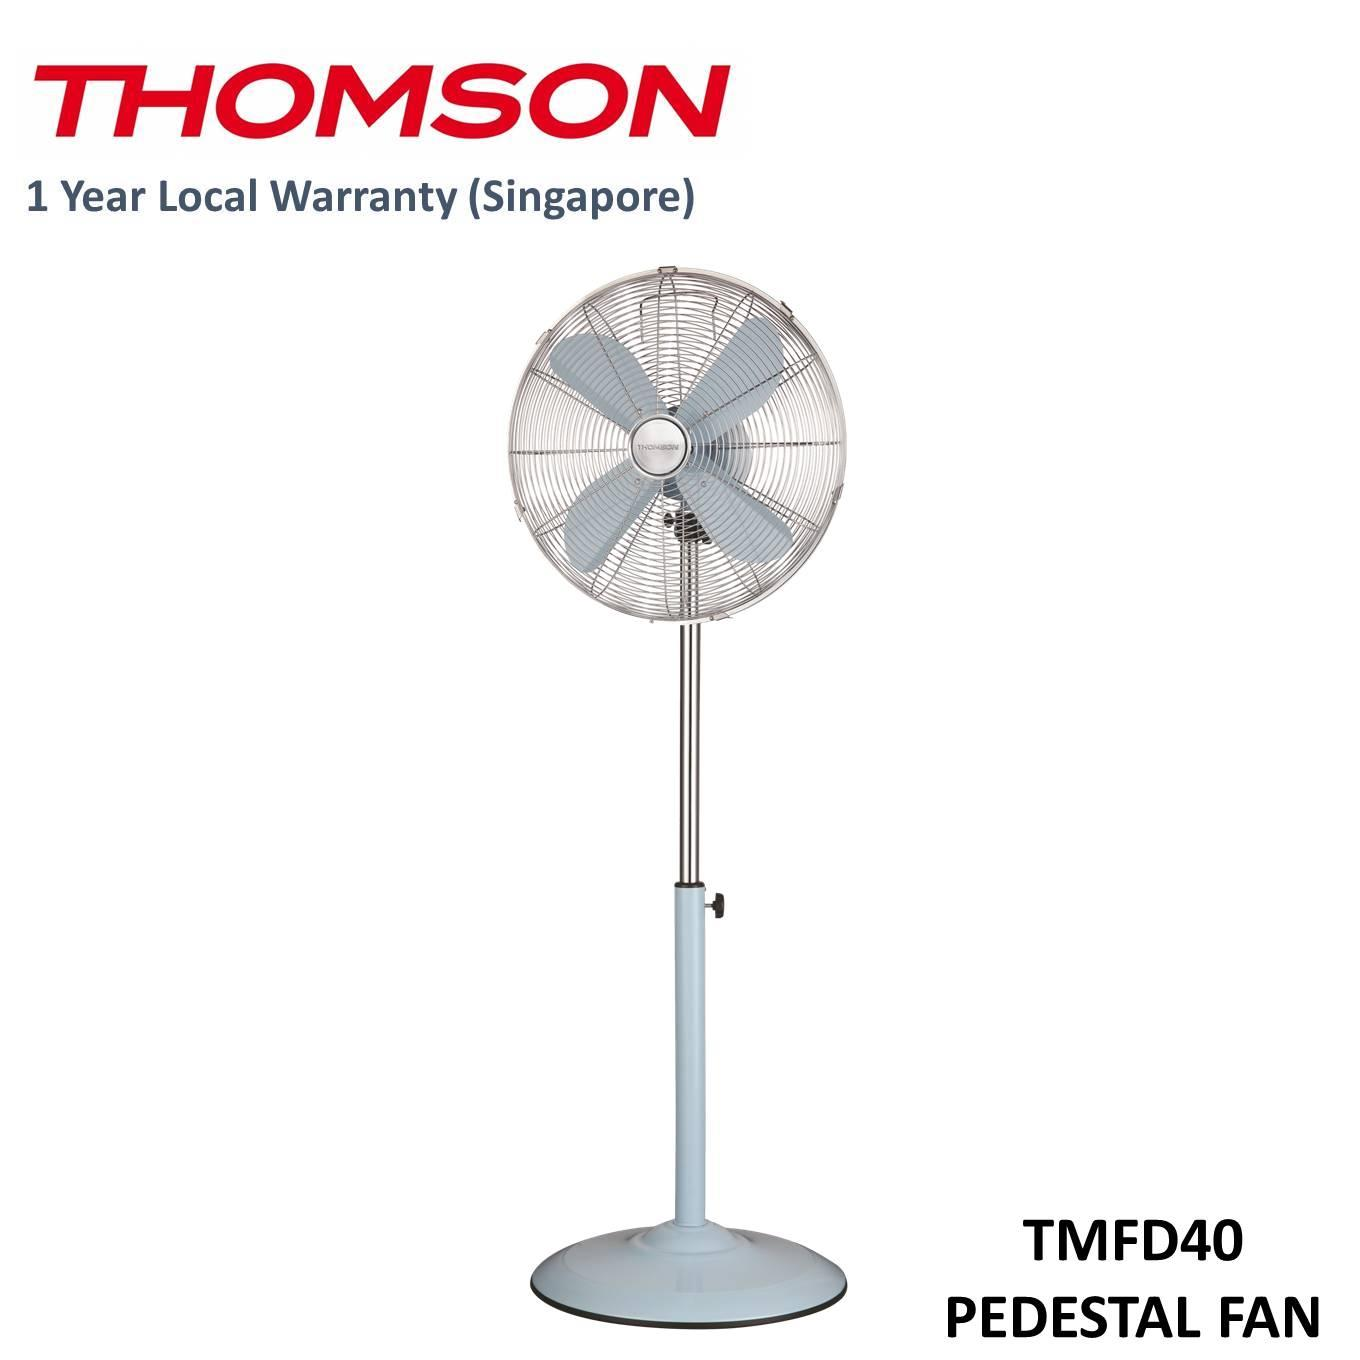 Discount Thomson 16 Retro Pedestal Fan Cream Red Baby Blue Thomson Singapore